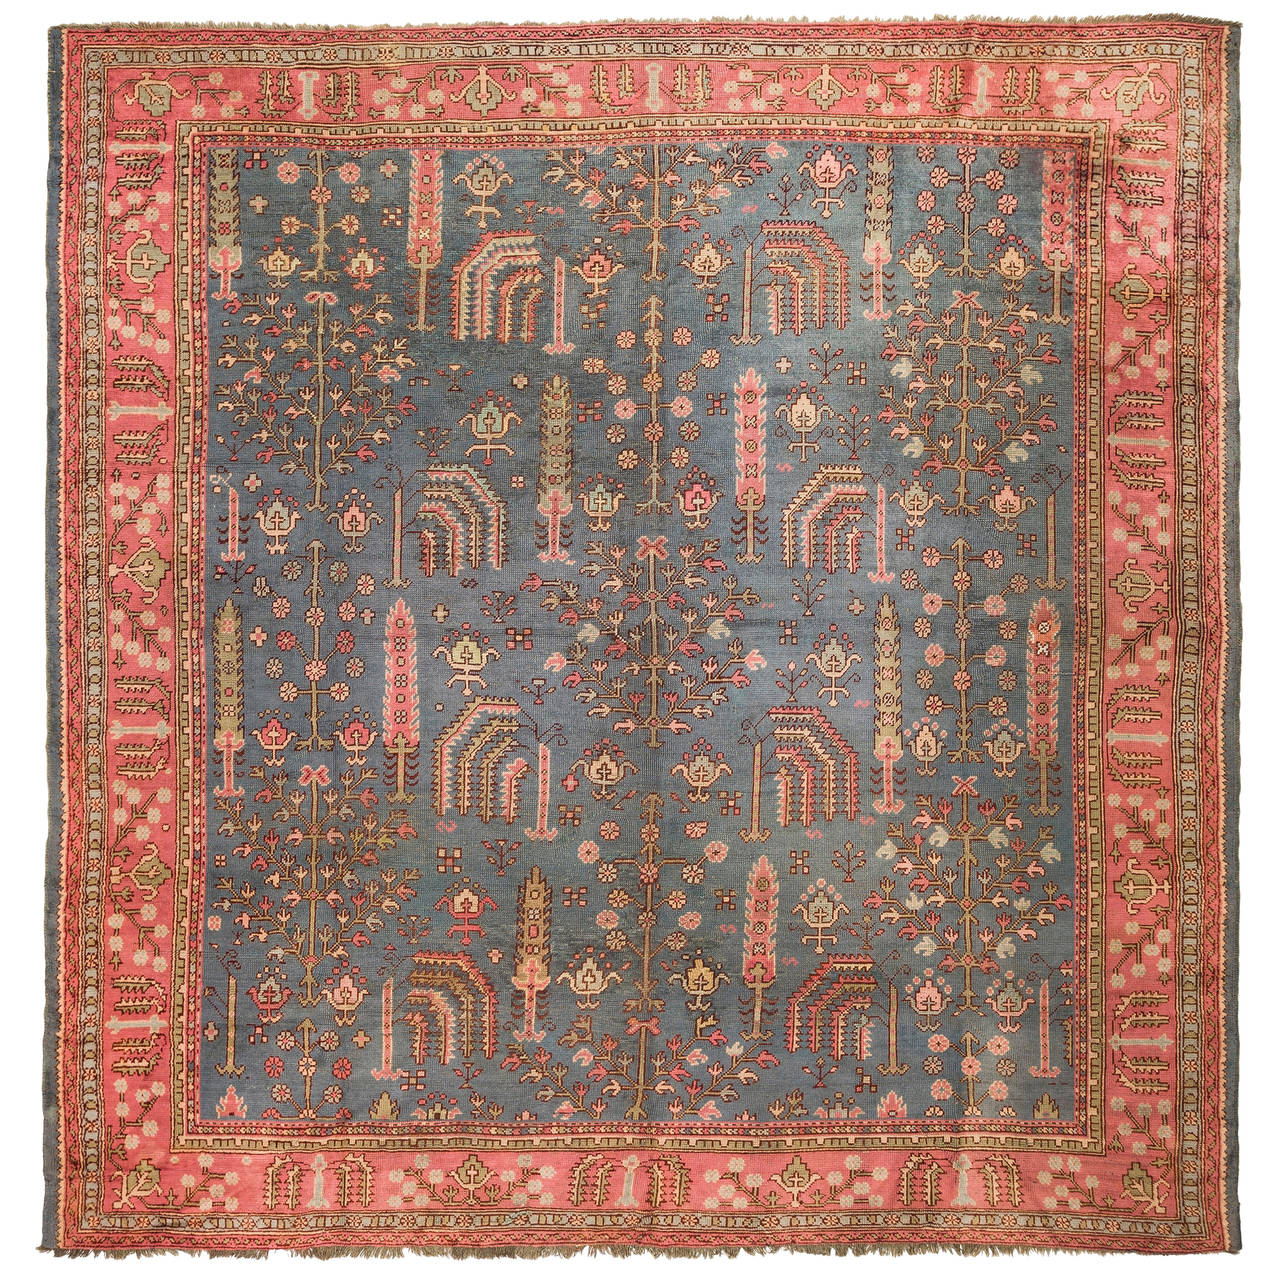 silk cent highres rugs antique ottoman transylvanian turkish rug prayer late dealer knights design